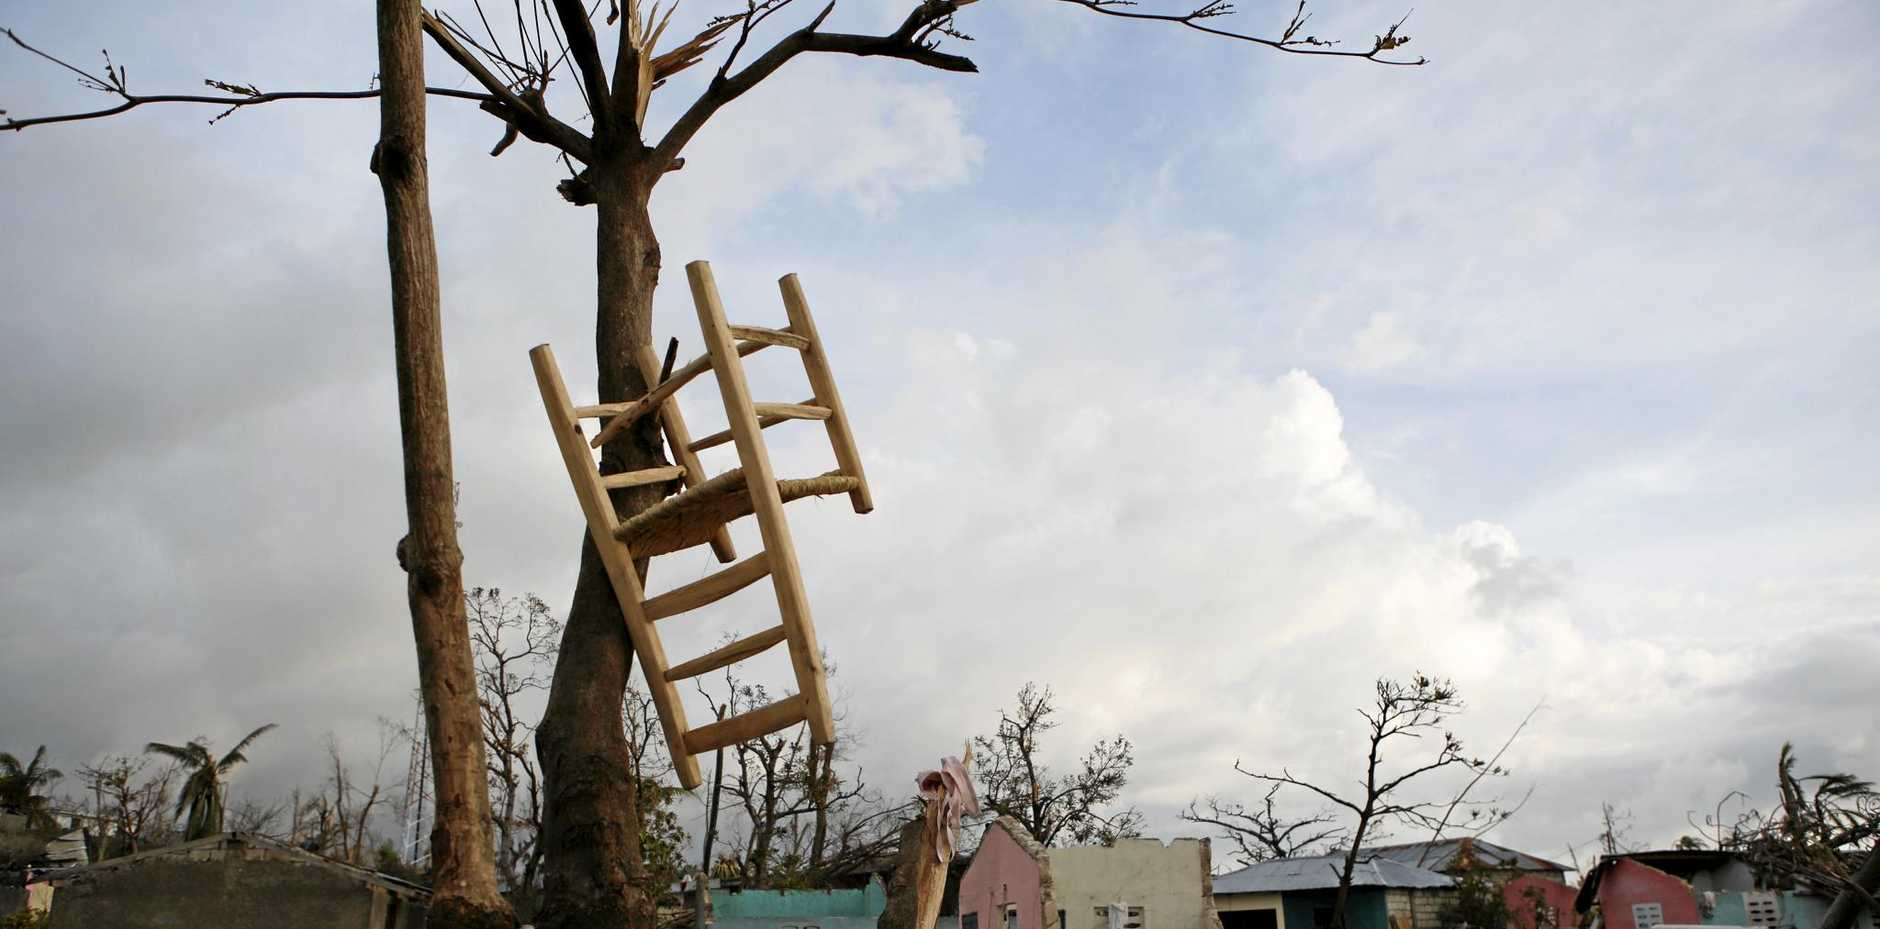 A salvaged chair hangs in a tree amidst nearby homes destroyed by Hurricane Matthew, in a seaside fishing neighborhood of Port Salut, Haiti, Sunday, Oct. 9, 2016. Nearly a week after the storm smashed into southwestern Haiti, some communities along the southern coast have yet to receive any assistance, leaving residents who have lost their homes and virtually all of their belongings struggling to find shelter and potable water .(AP Photo/Rebecca Blackwell)